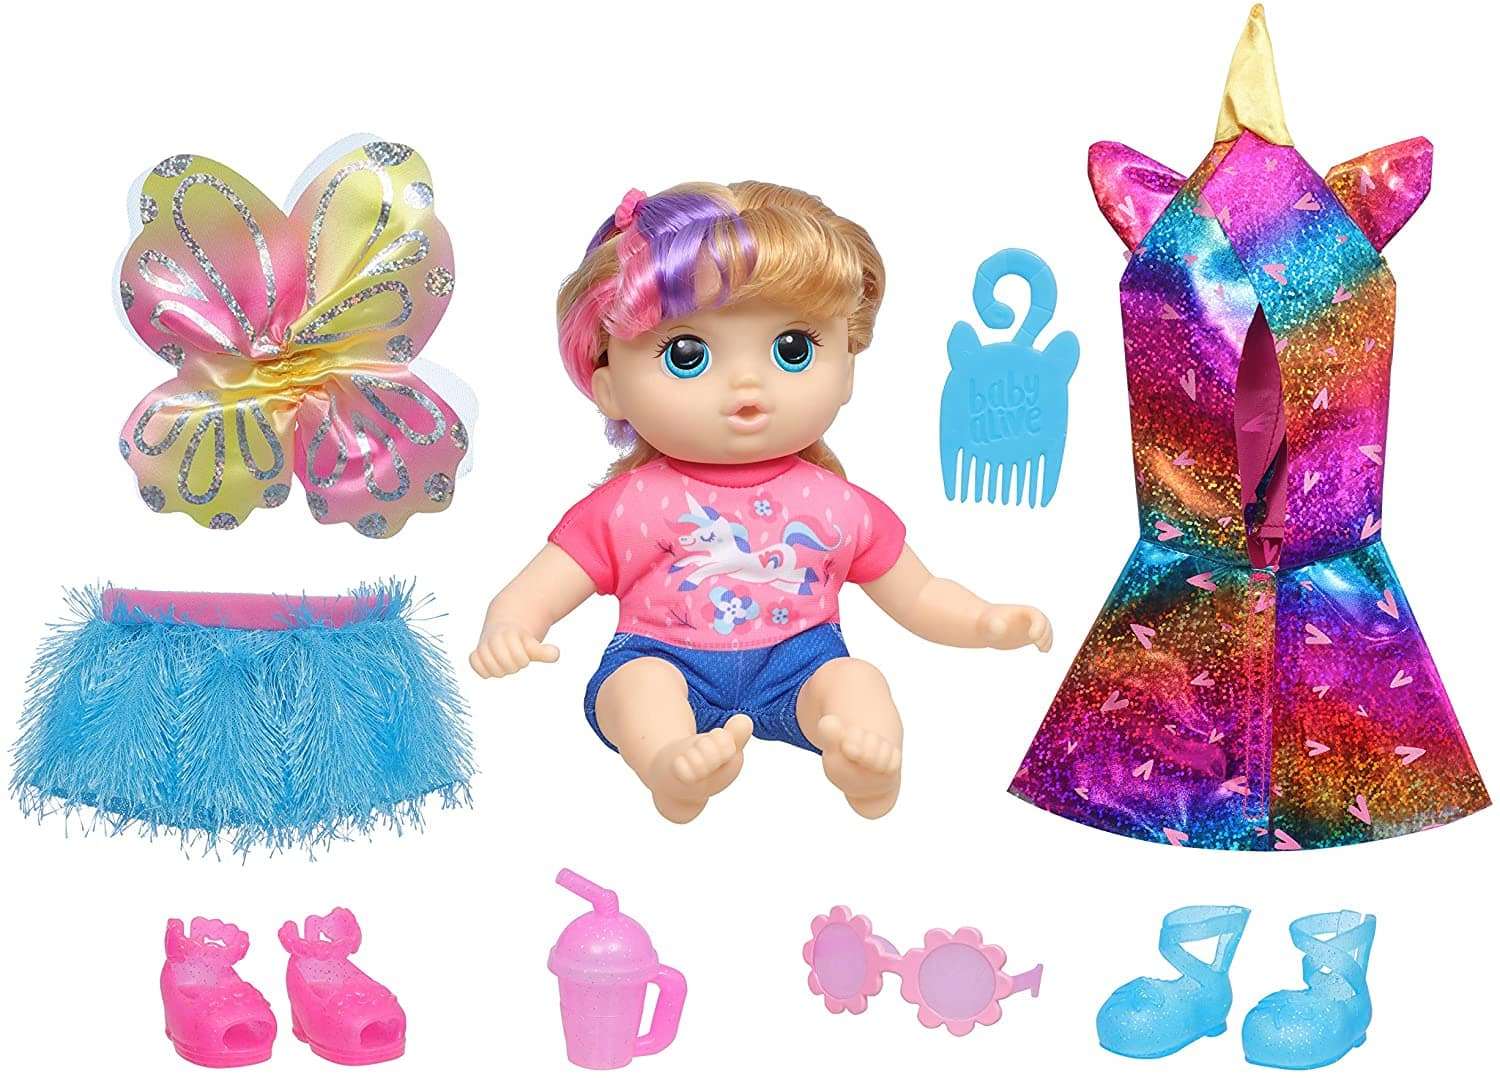 Littles by Baby Alive Fantasy Styles Squad Doll w/ Fairytale Accessories (Little Kiera) $13 + Free Shipping w/ Amazon Prime or Orders $25+